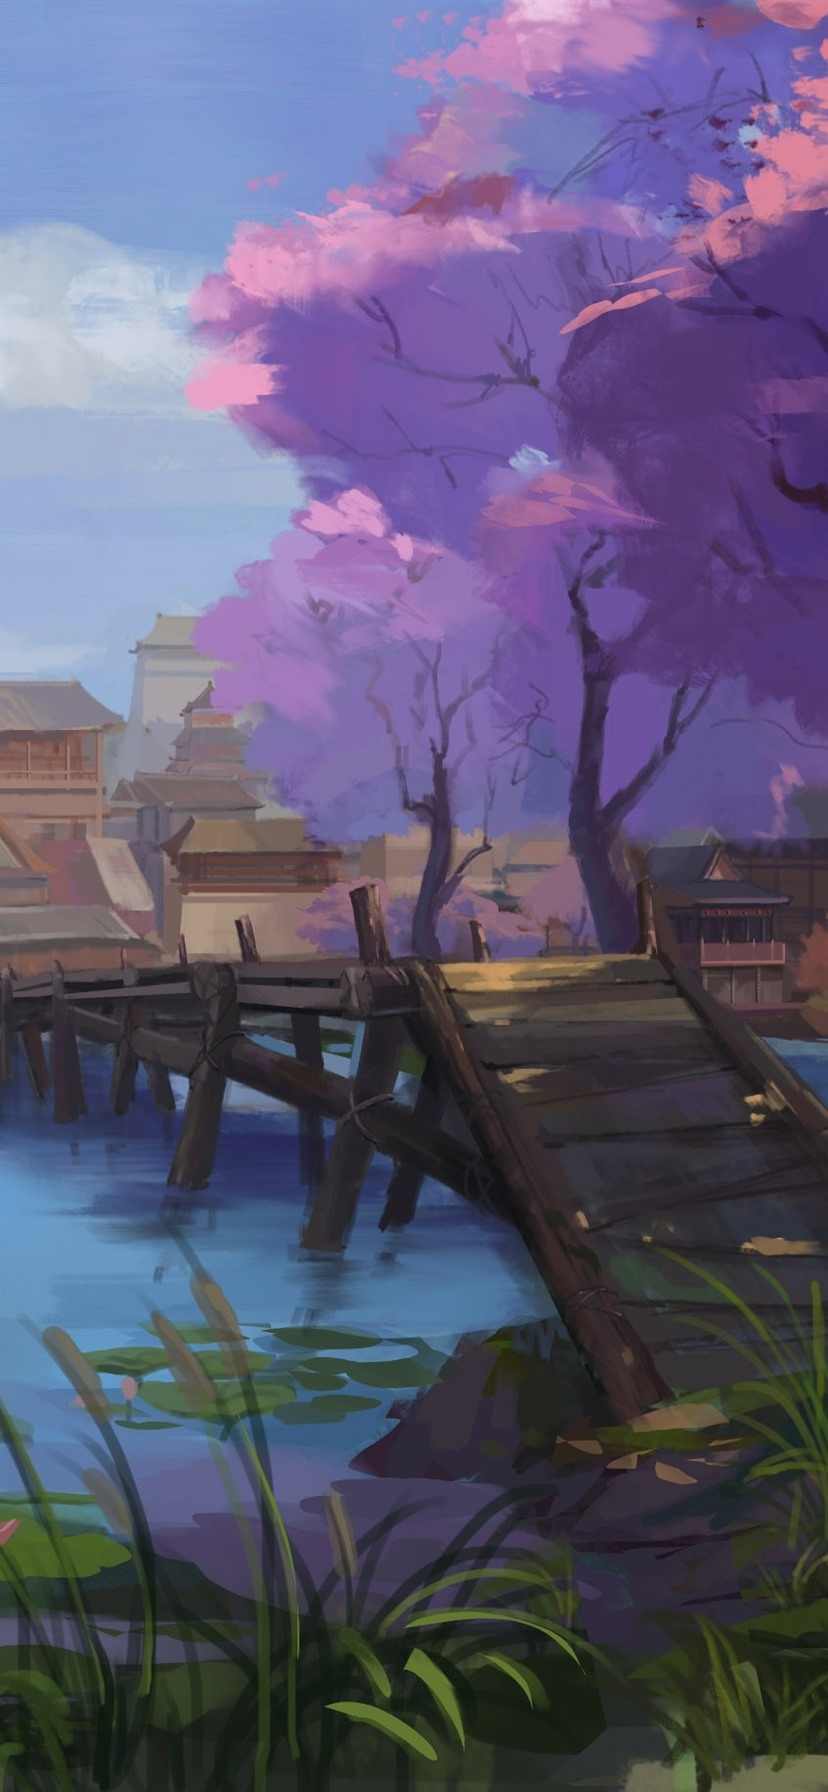 Watercolor Painting China Village Retro Style 828x1792